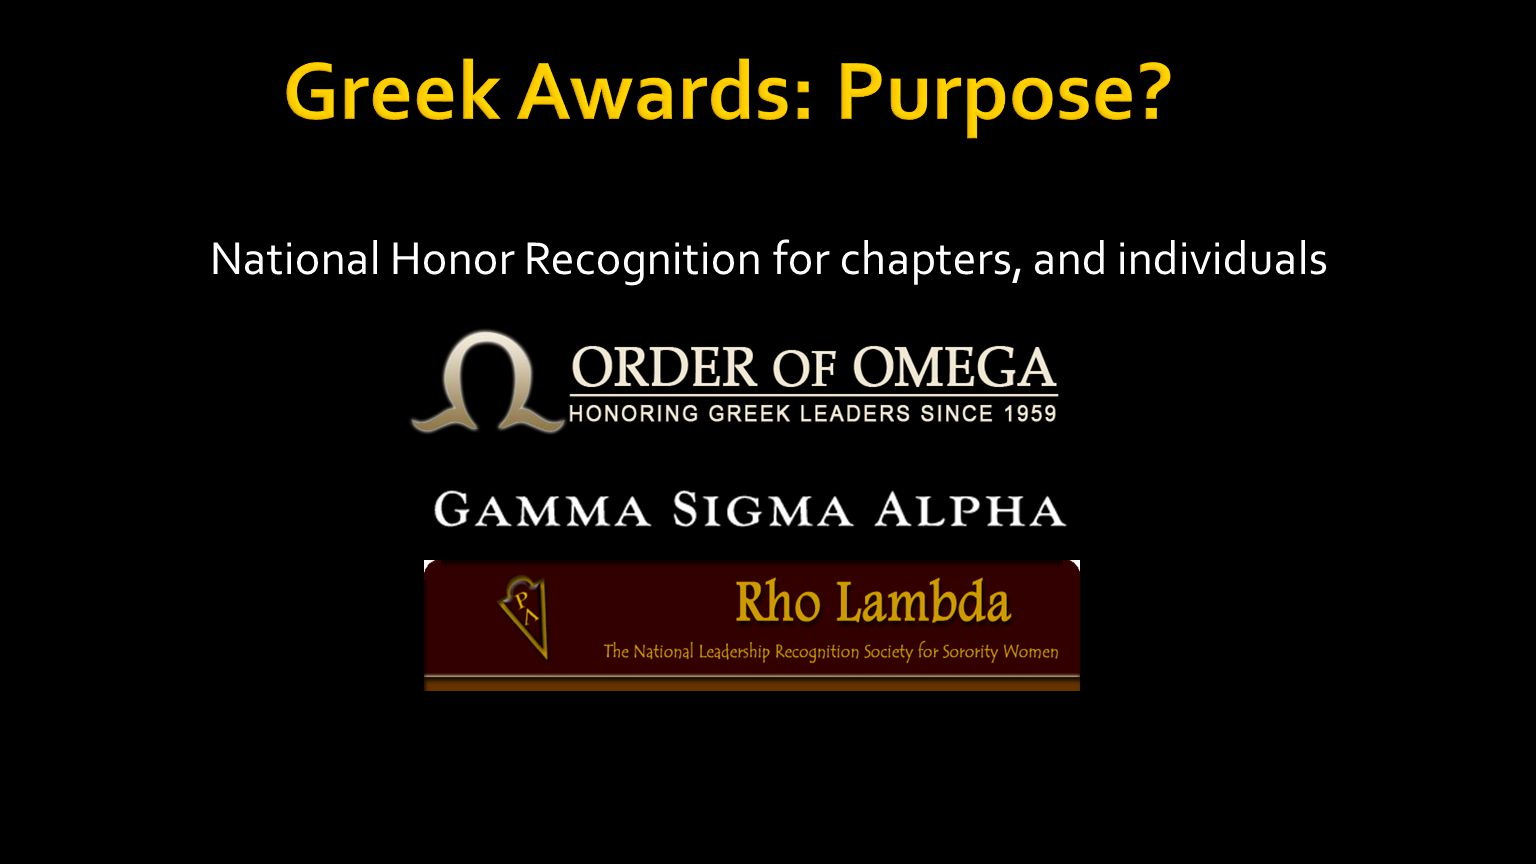 National Honor Recognition for chapters, and individuals